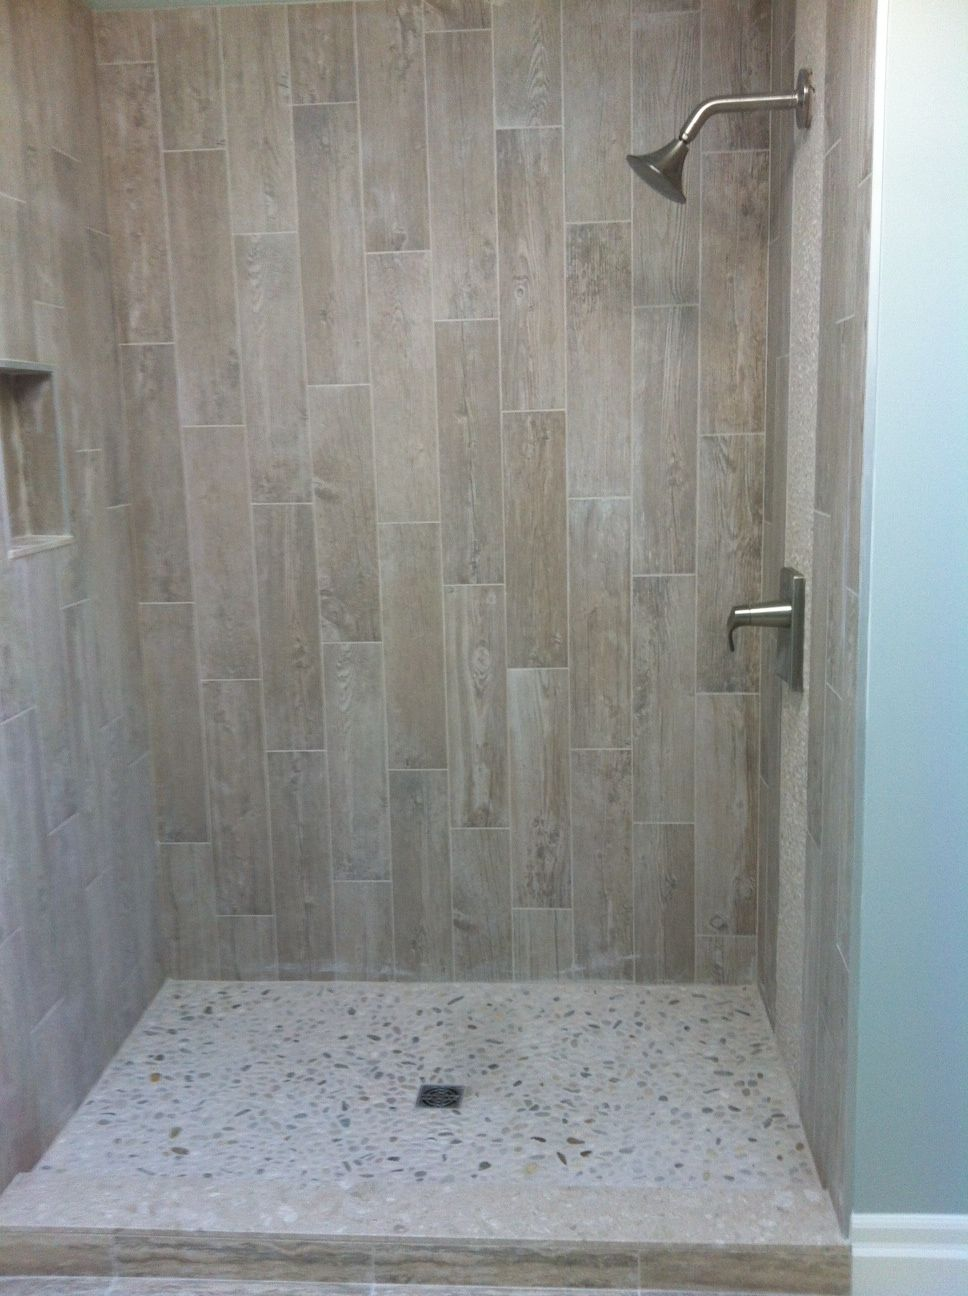 Wood Grain Tile With River Rock | showers | Wood tile ...